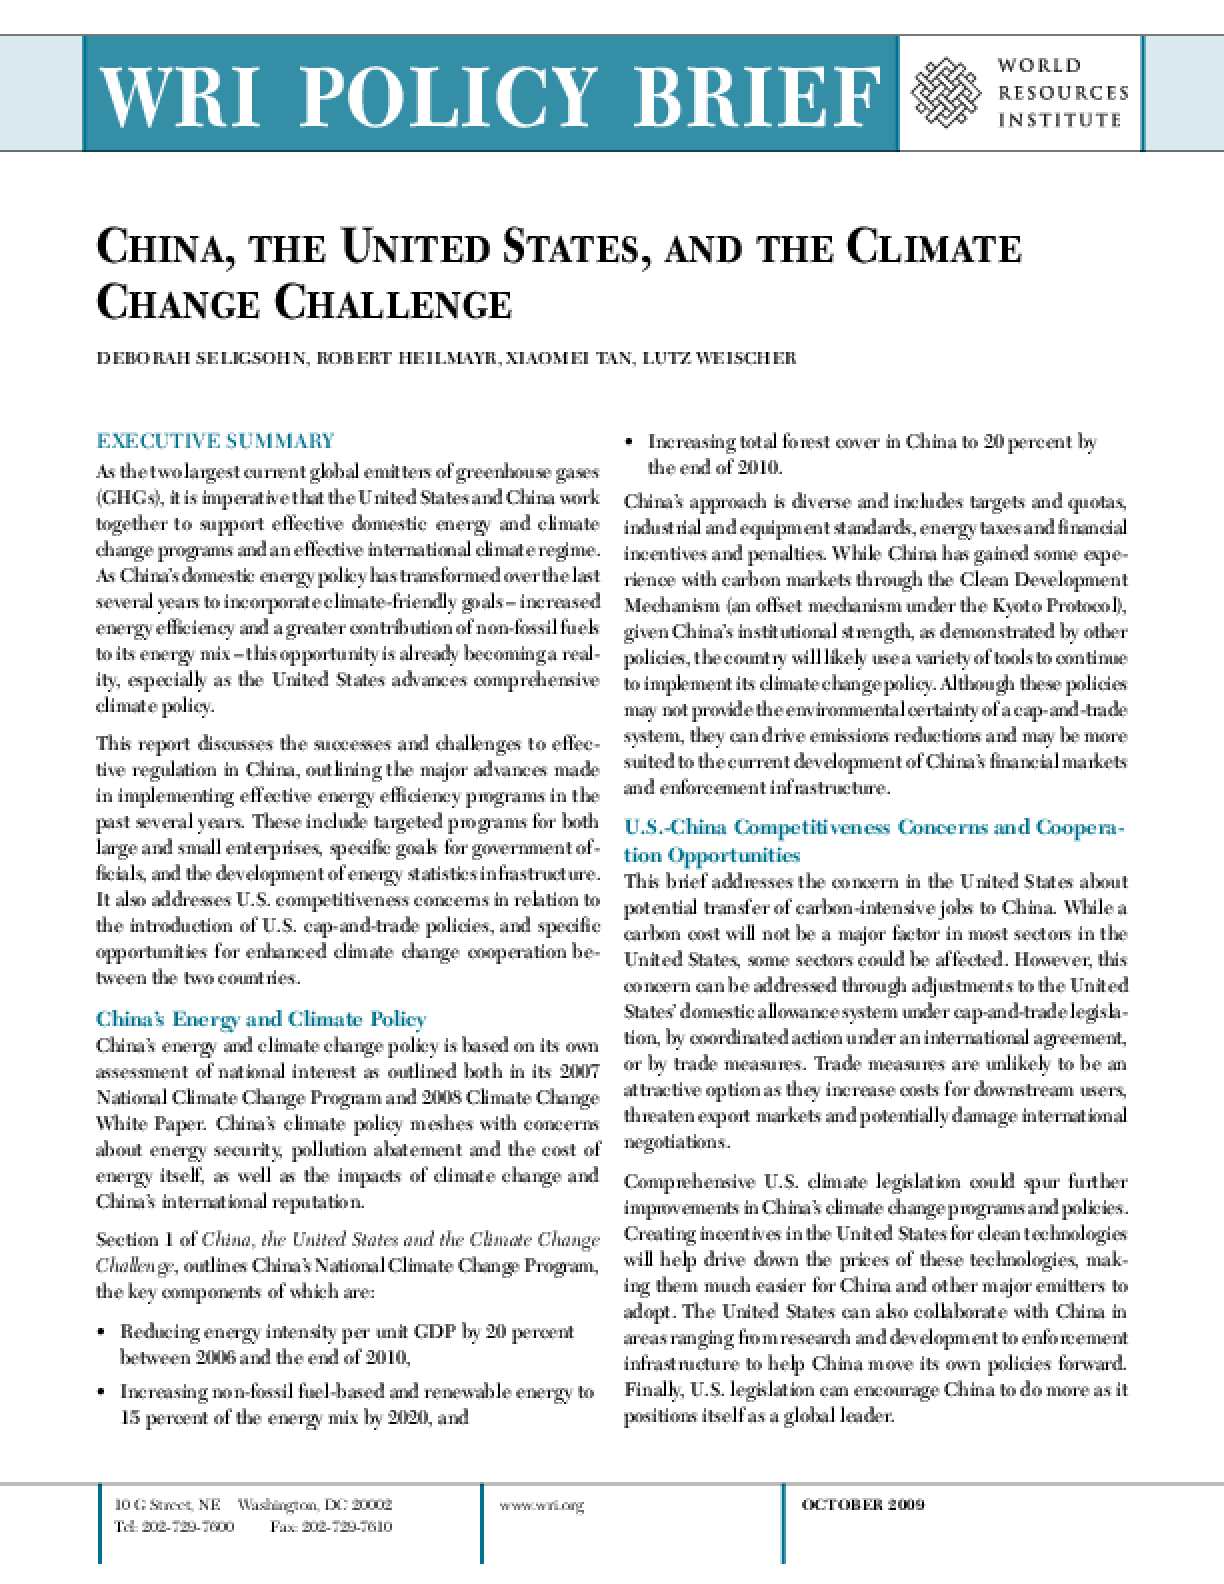 China, the United States, and the Climate Change Challenge